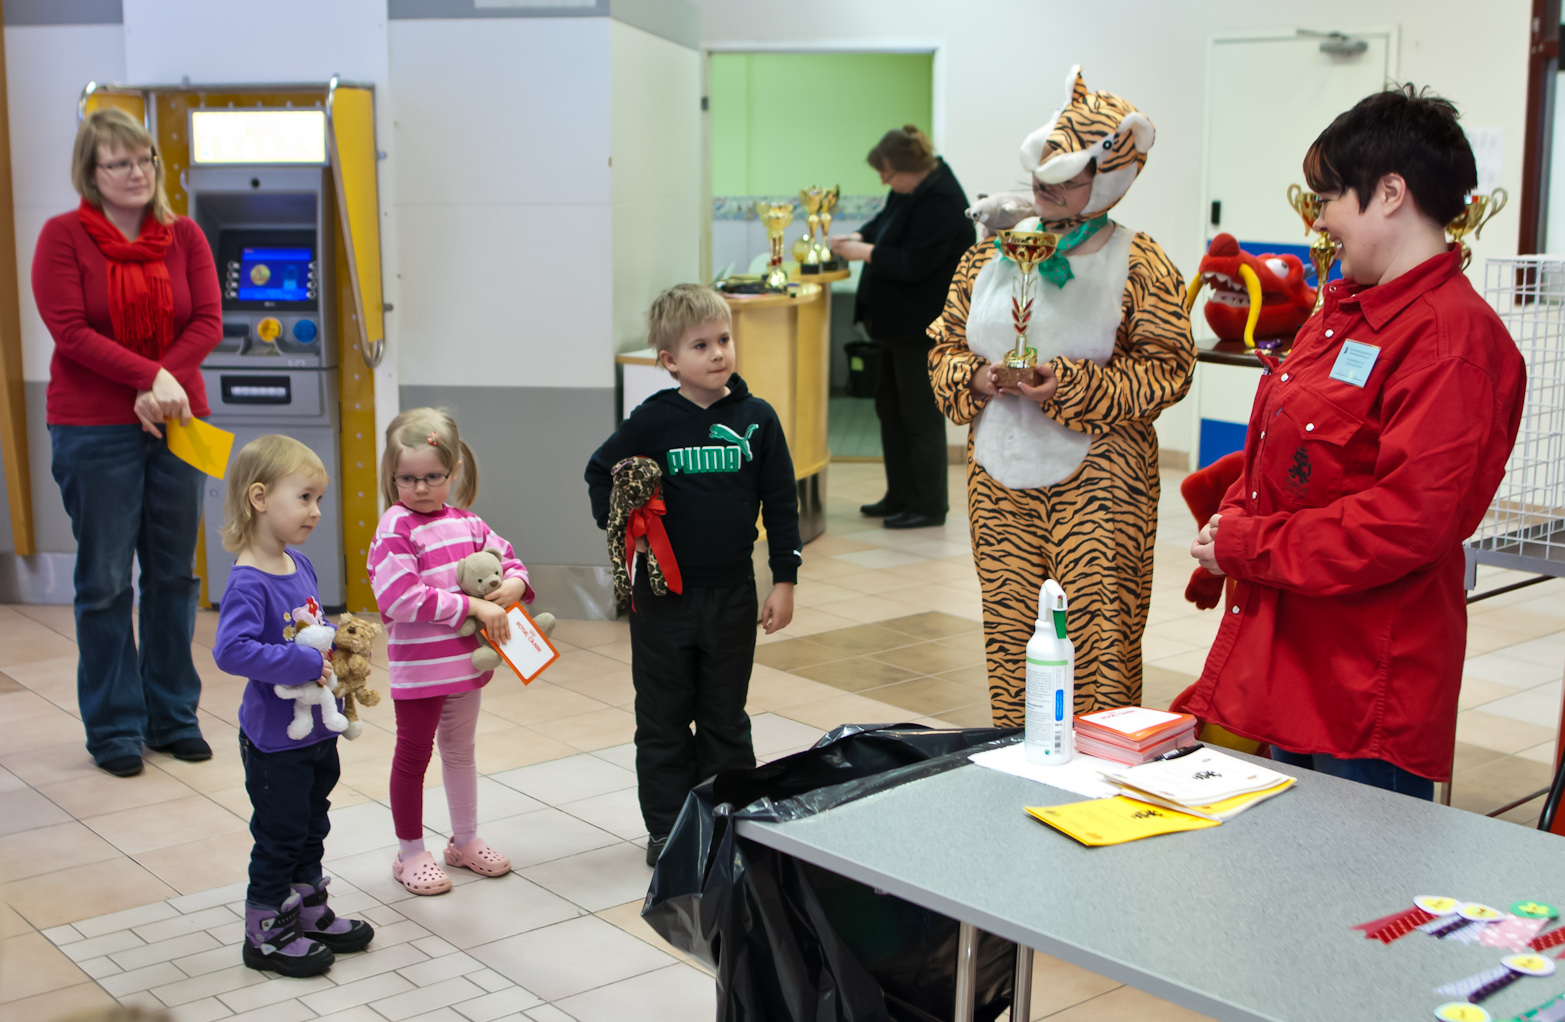 the toy cat contest, photo 191047, 2012-03-17